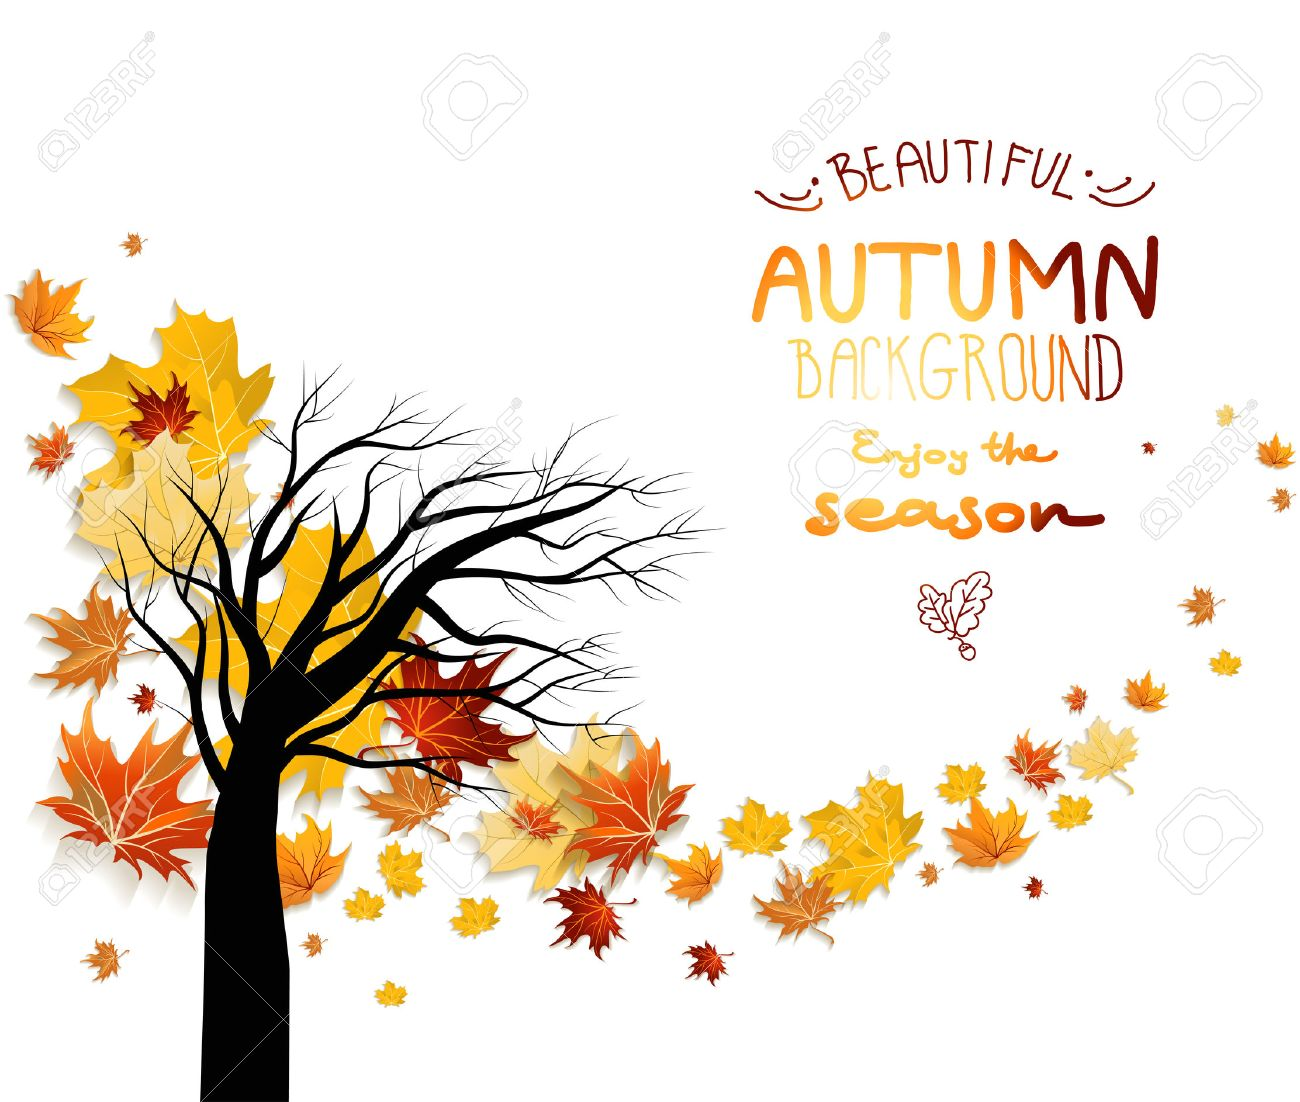 Abstract autumn background with autumn leaves and silhouette of tree. Copy space. - 32770425